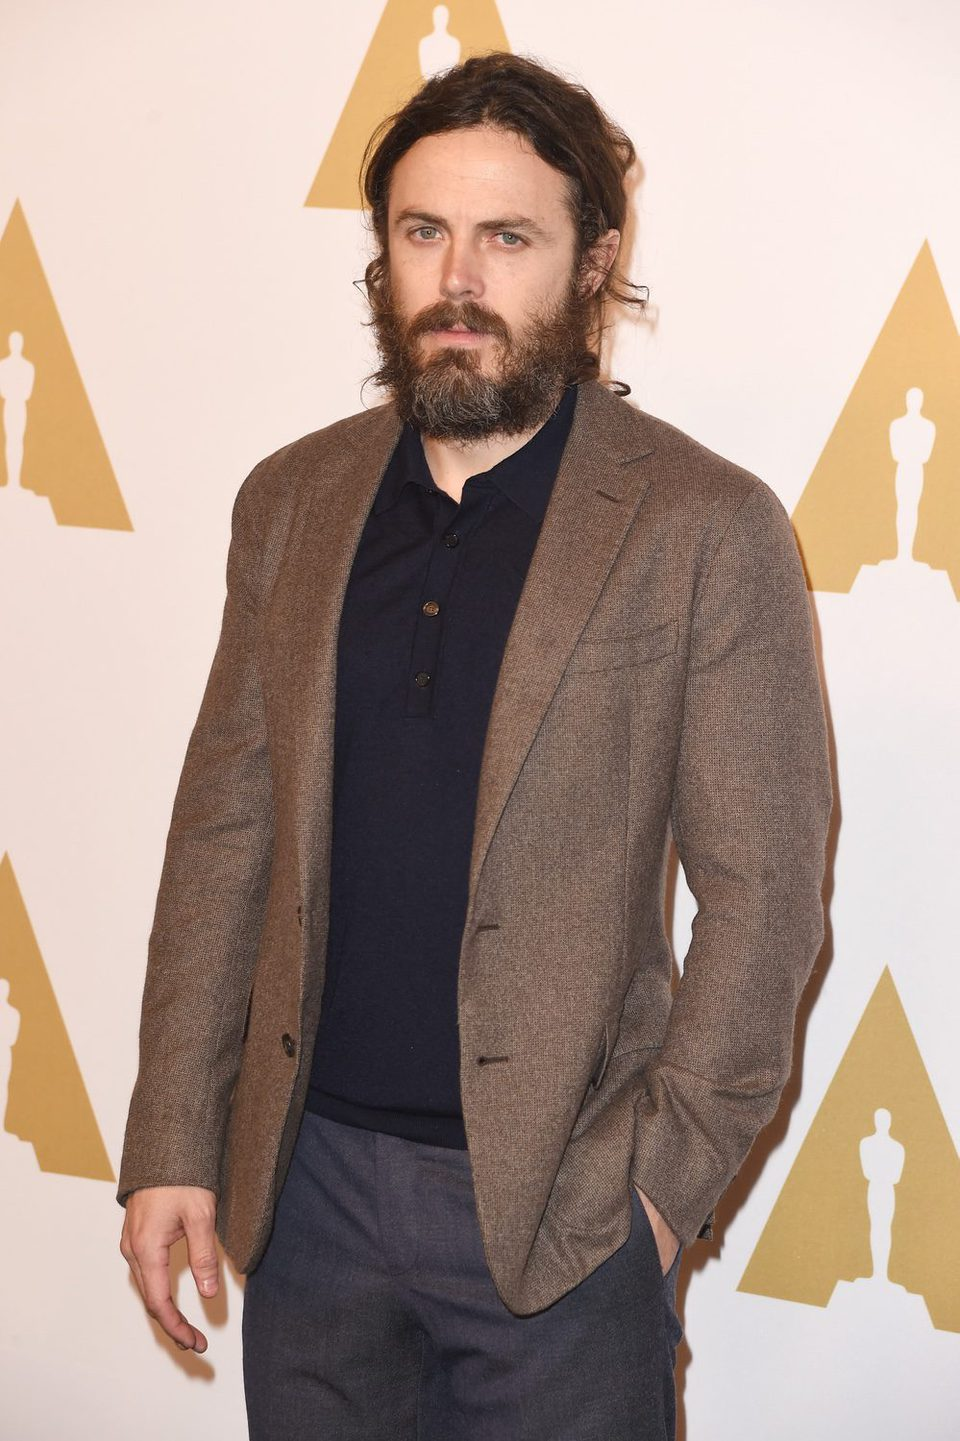 Casey Affleck at the 2017 Annual Academy Awards Nominee Luncheon